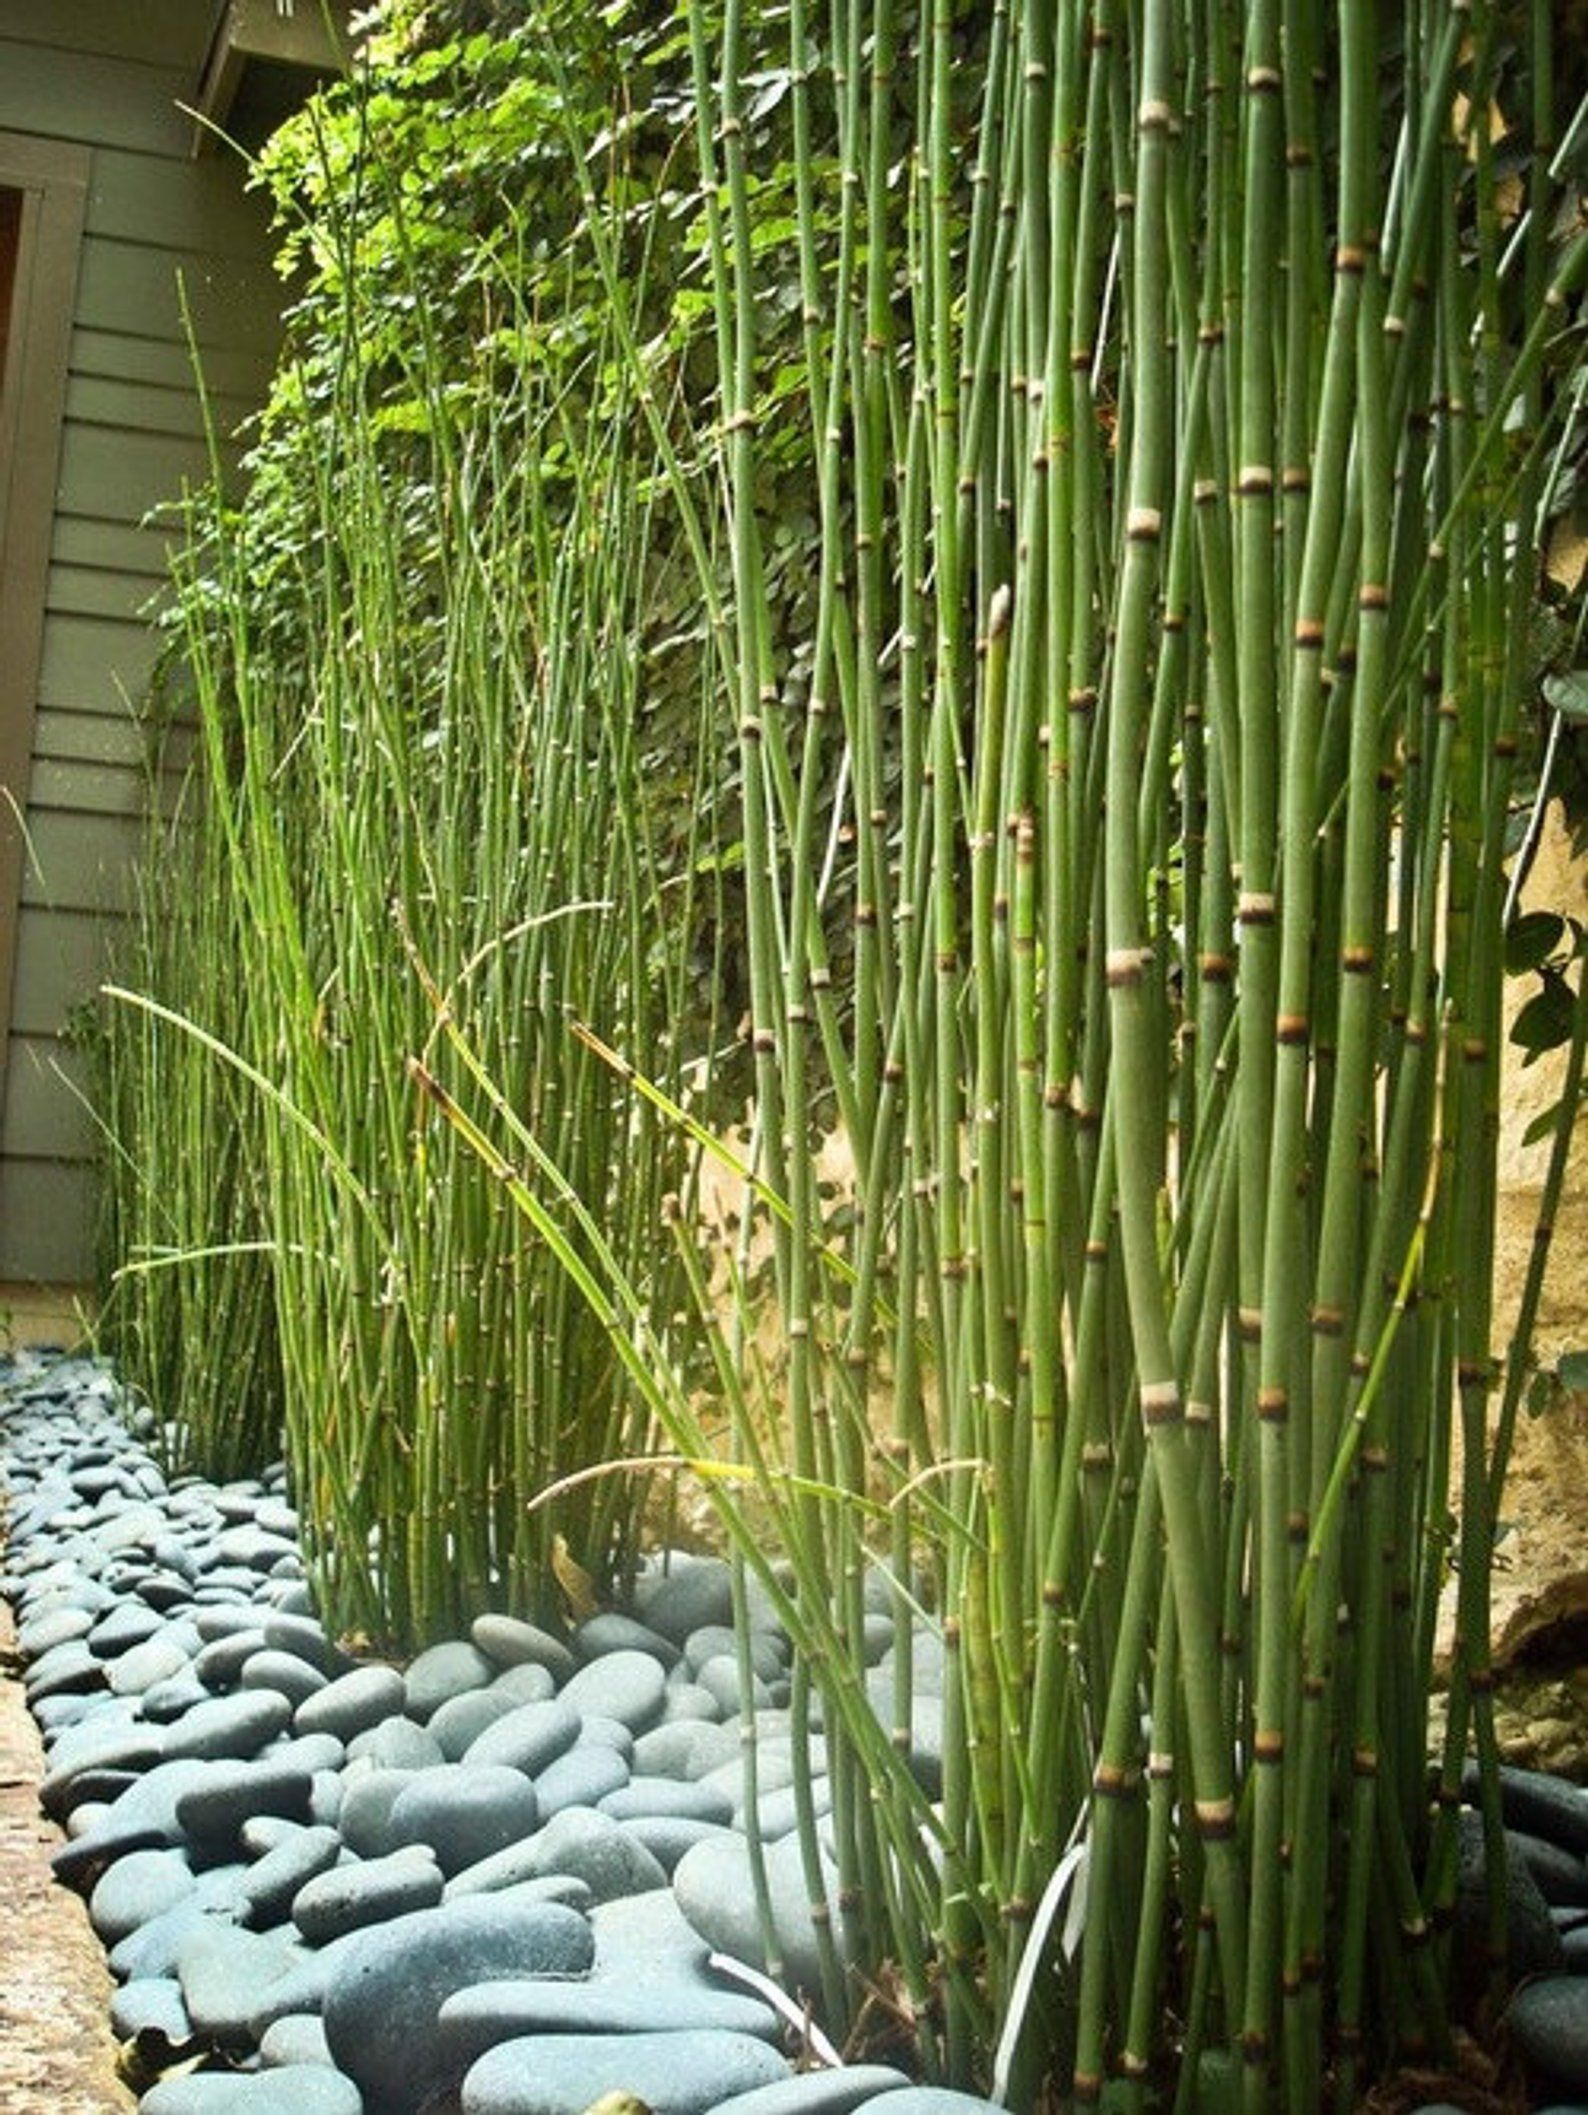 15 x Horsetail Reed Bamboo Looking Zen Garden & Pond Plants 15 inches tall